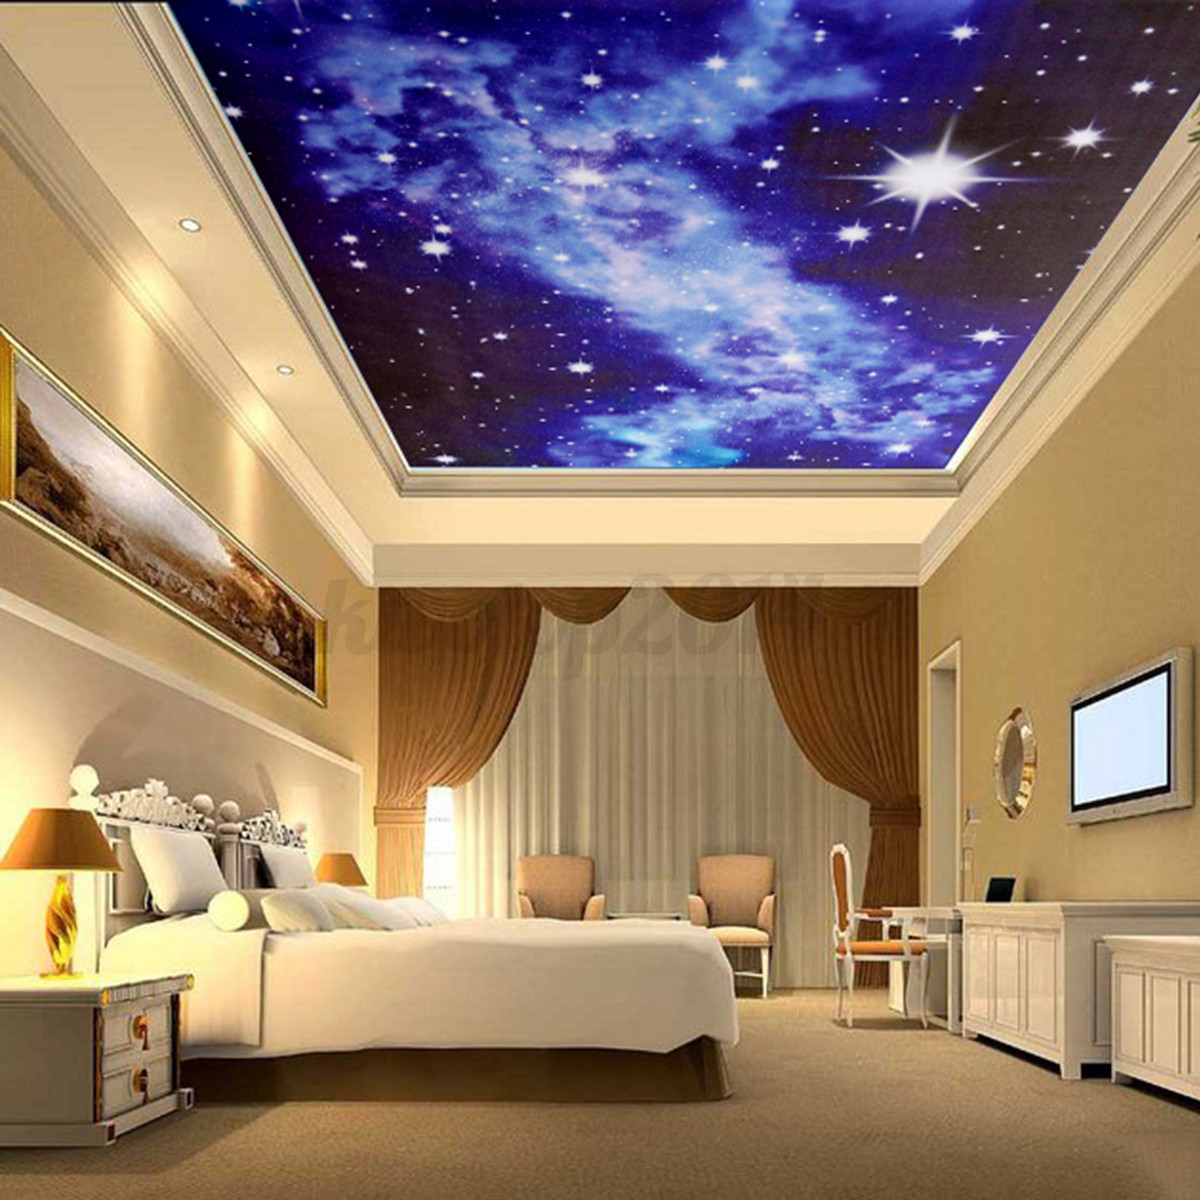 Bed In Livingroom: 3D Bright Stars Wall Sticker Mural For Ceiling Bedroom